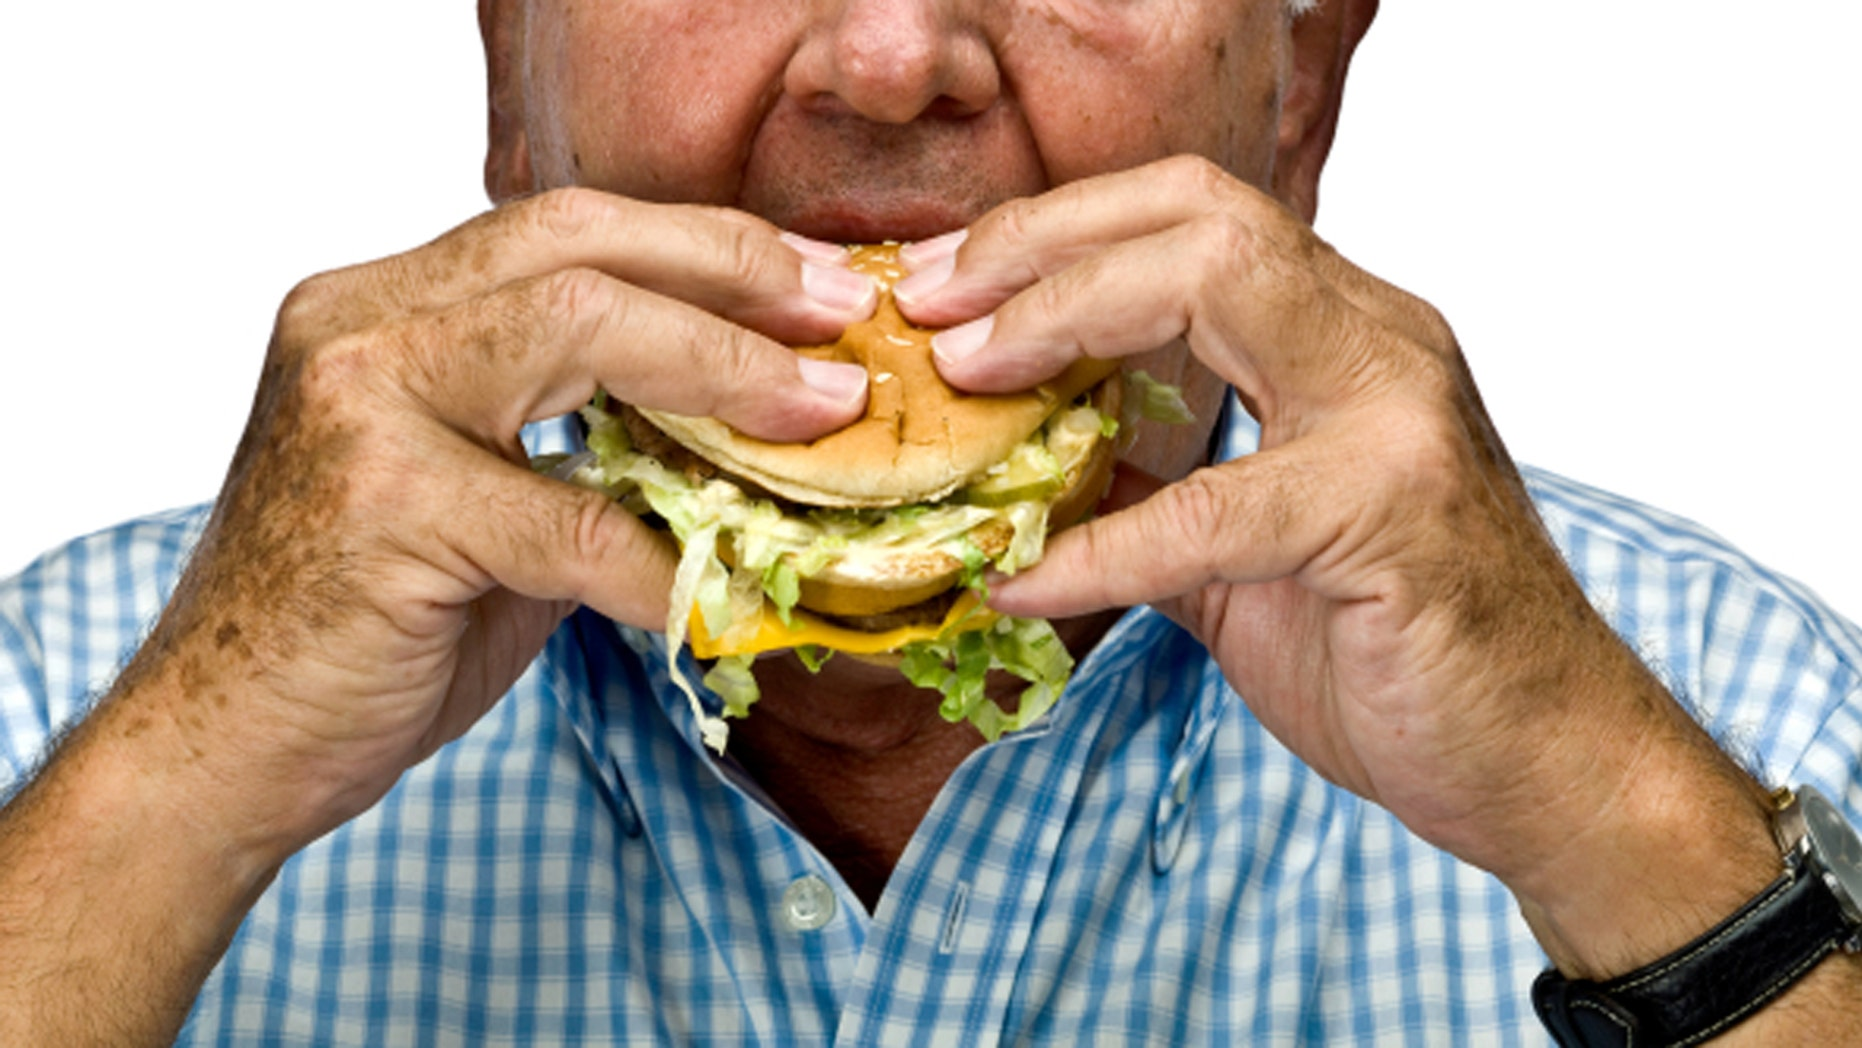 """The Internet is going crazy over the viral story behind """"papaw"""" and his lonely burger dinner."""